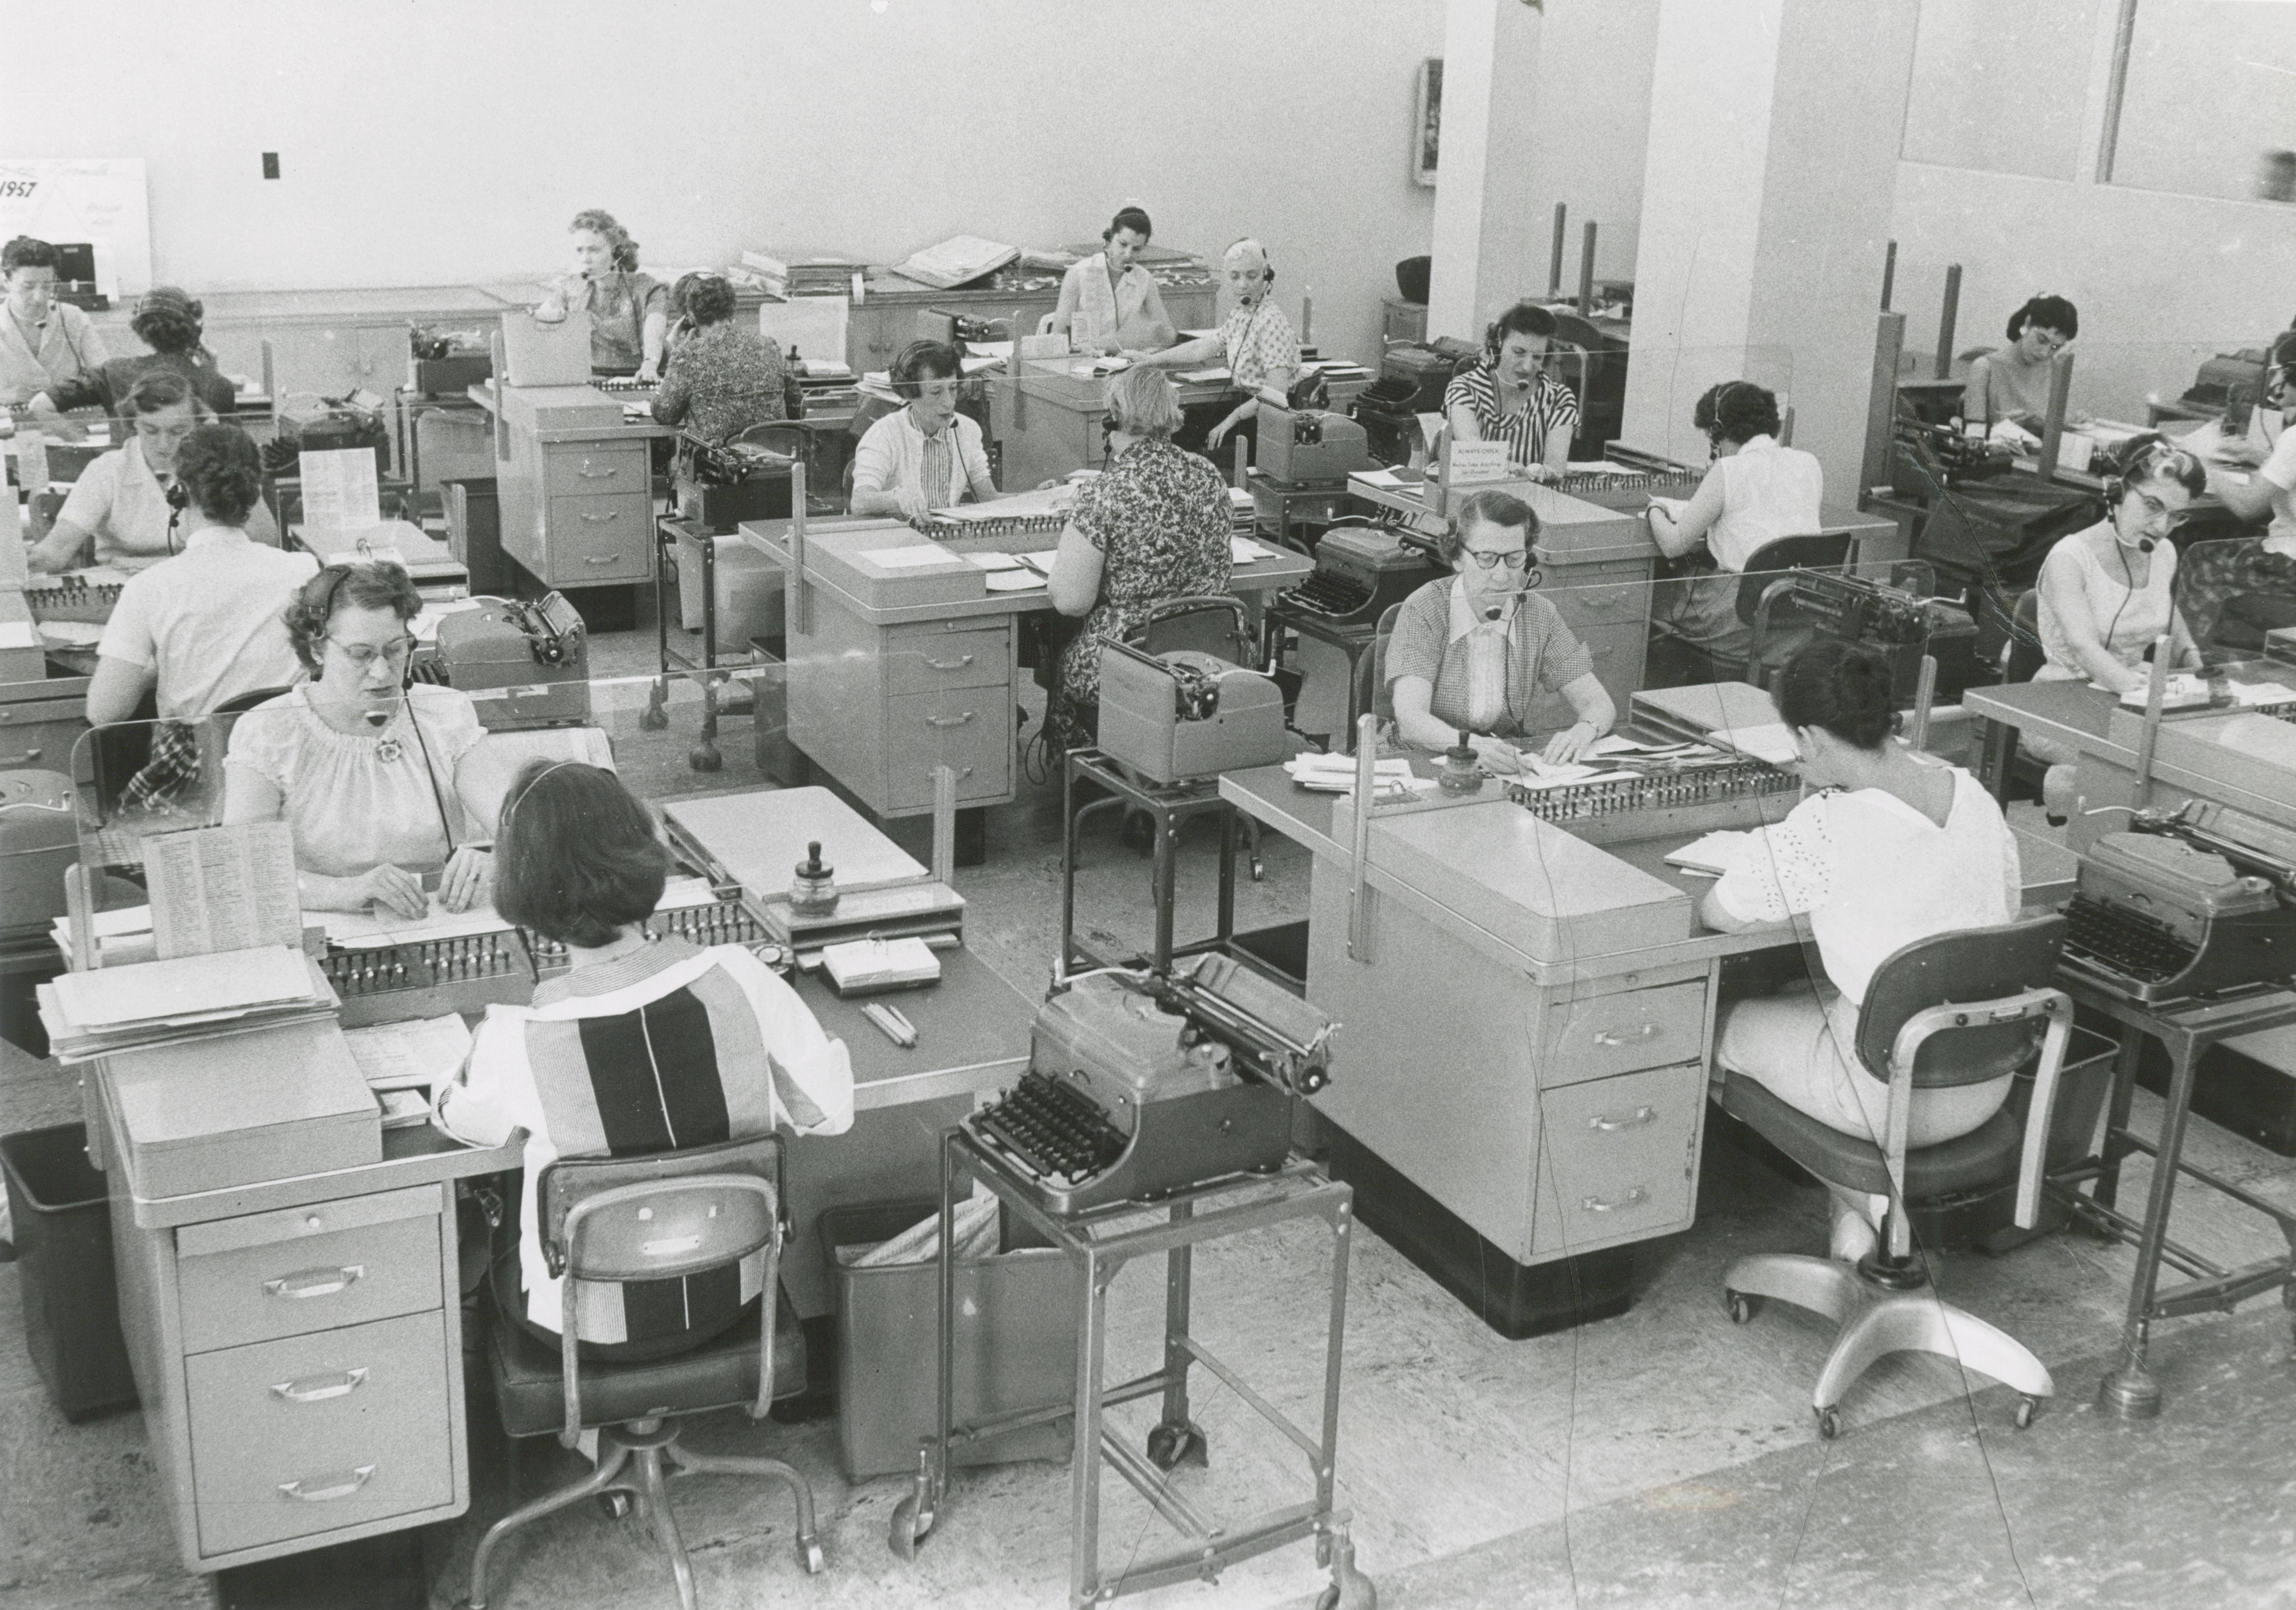 <table class=&quot;lightbox&quot;><tr><td colspan=2 class=&quot;lightbox-title&quot;>Milwaukee Journal Steno Pool</td></tr><tr><td colspan=2 class=&quot;lightbox-caption&quot;>A room full of women work at desks at the Milwaukee Journal. Each woman is wearing a headset, suggesting that this is the steno pool.</td></tr><tr><td colspan=2 class=&quot;lightbox-spacer&quot;></td></tr><tr class=&quot;lightbox-detail&quot;><td class=&quot;cell-title&quot;>Source: </td><td class=&quot;cell-value&quot;>From the Historic Photo Archive of the Milwaukee Public Library. Reprinted with permission.<br /><a href=&quot;http://content.mpl.org/cdm/singleitem/collection/HstoricPho/id/3491/rec/14&quot; target=&quot;_blank&quot;>Milwaukee Public Library</a></td></tr><tr class=&quot;filler-row&quot;><td colspan=2>&nbsp;</td></tr></table>